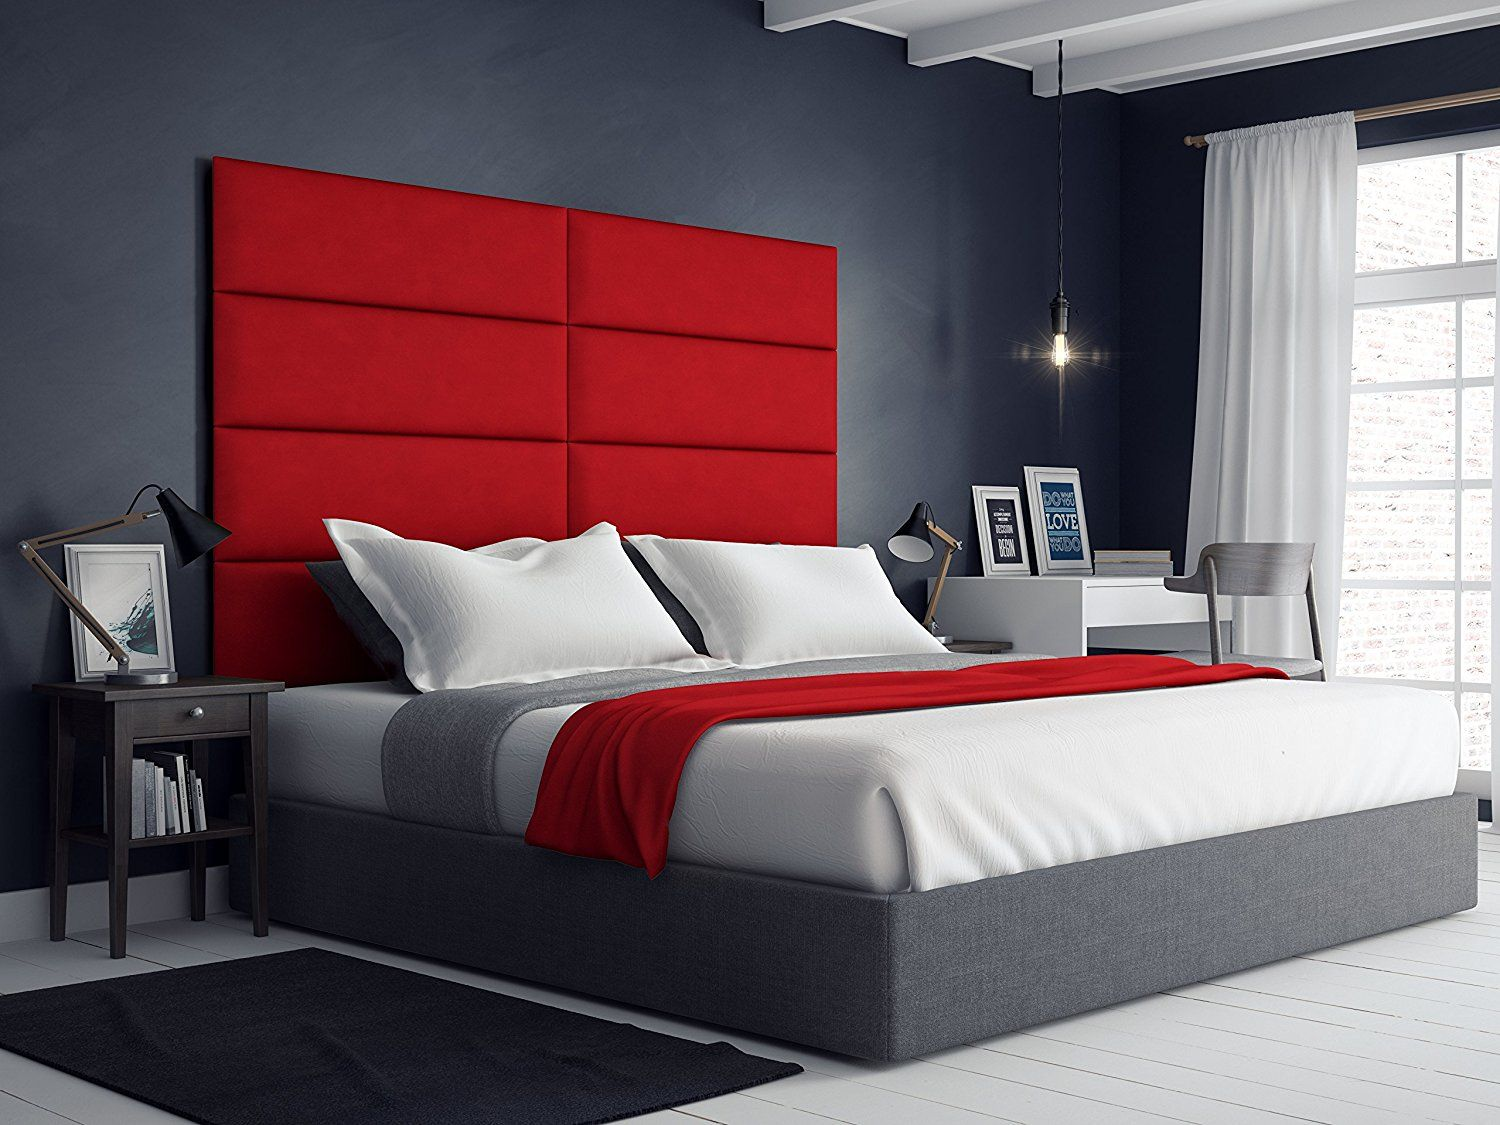 If You Are Looking For A Beautiful Comfortable And Elegant Looking Addition To Your King Size Be Upholstered Walls Upholstered Wall Panels King Size Headboard